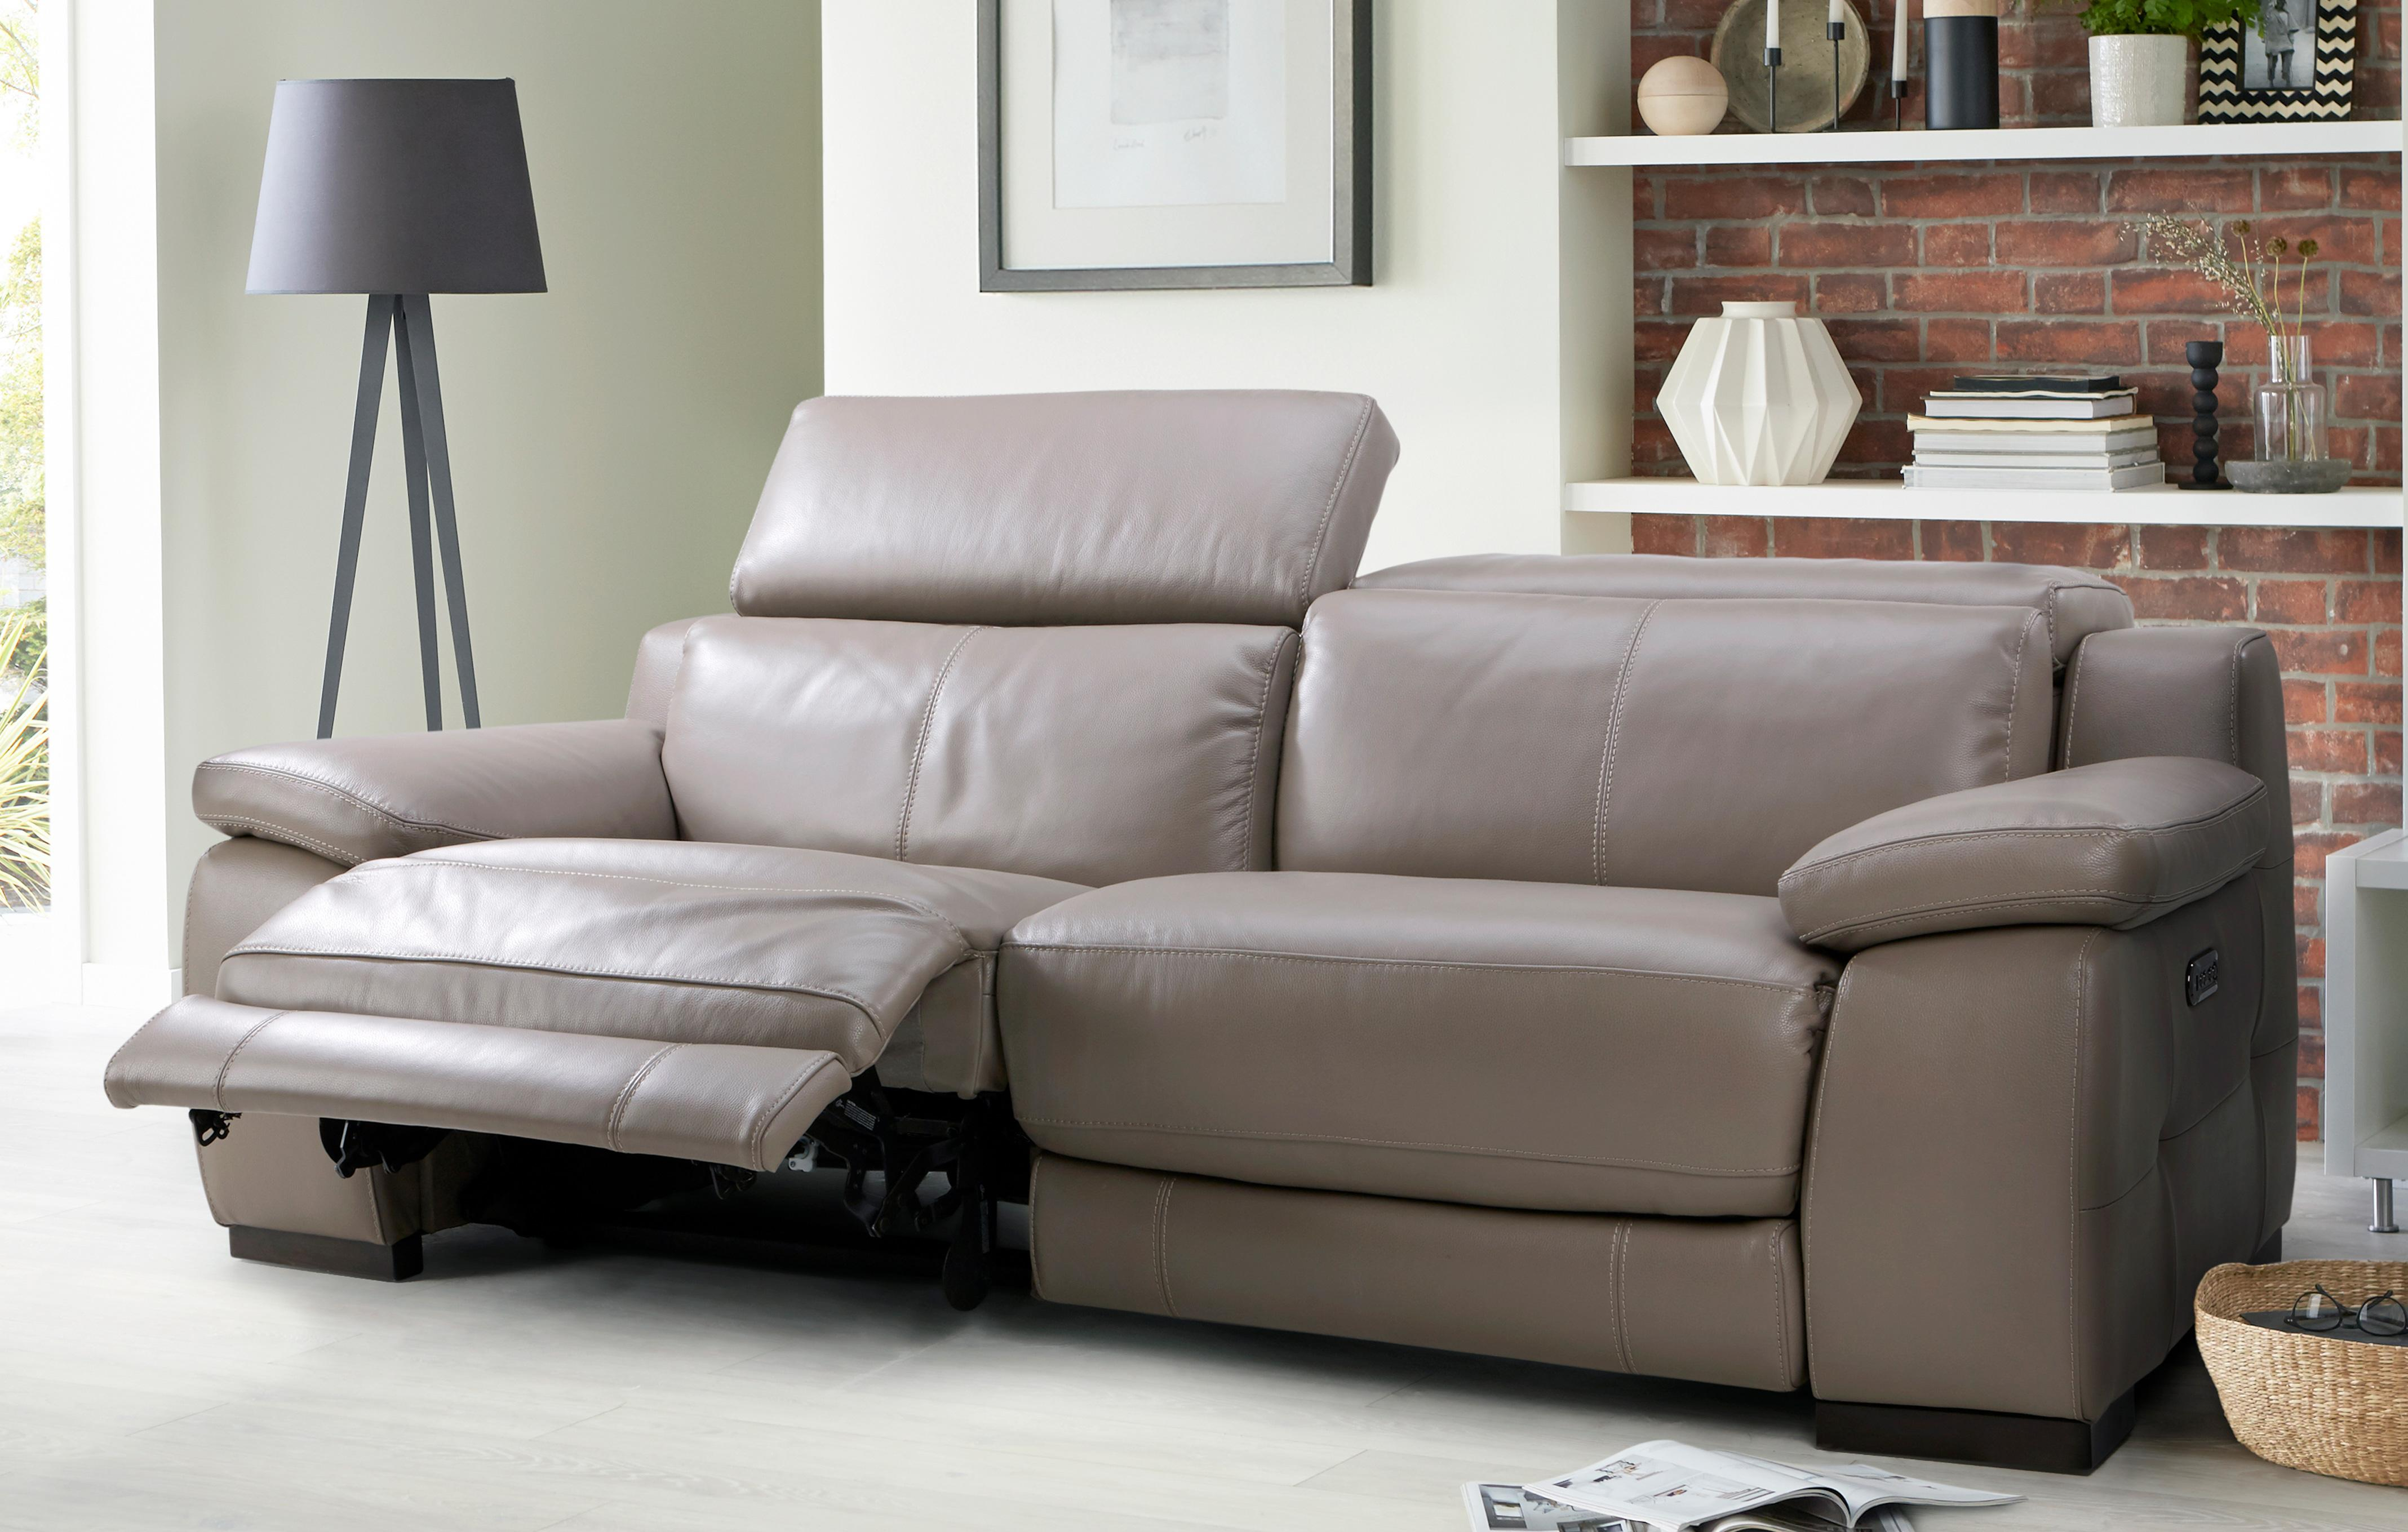 electric recliner leather sofas uk fama es great installation of wiring diagram in a range styles dfs rh co